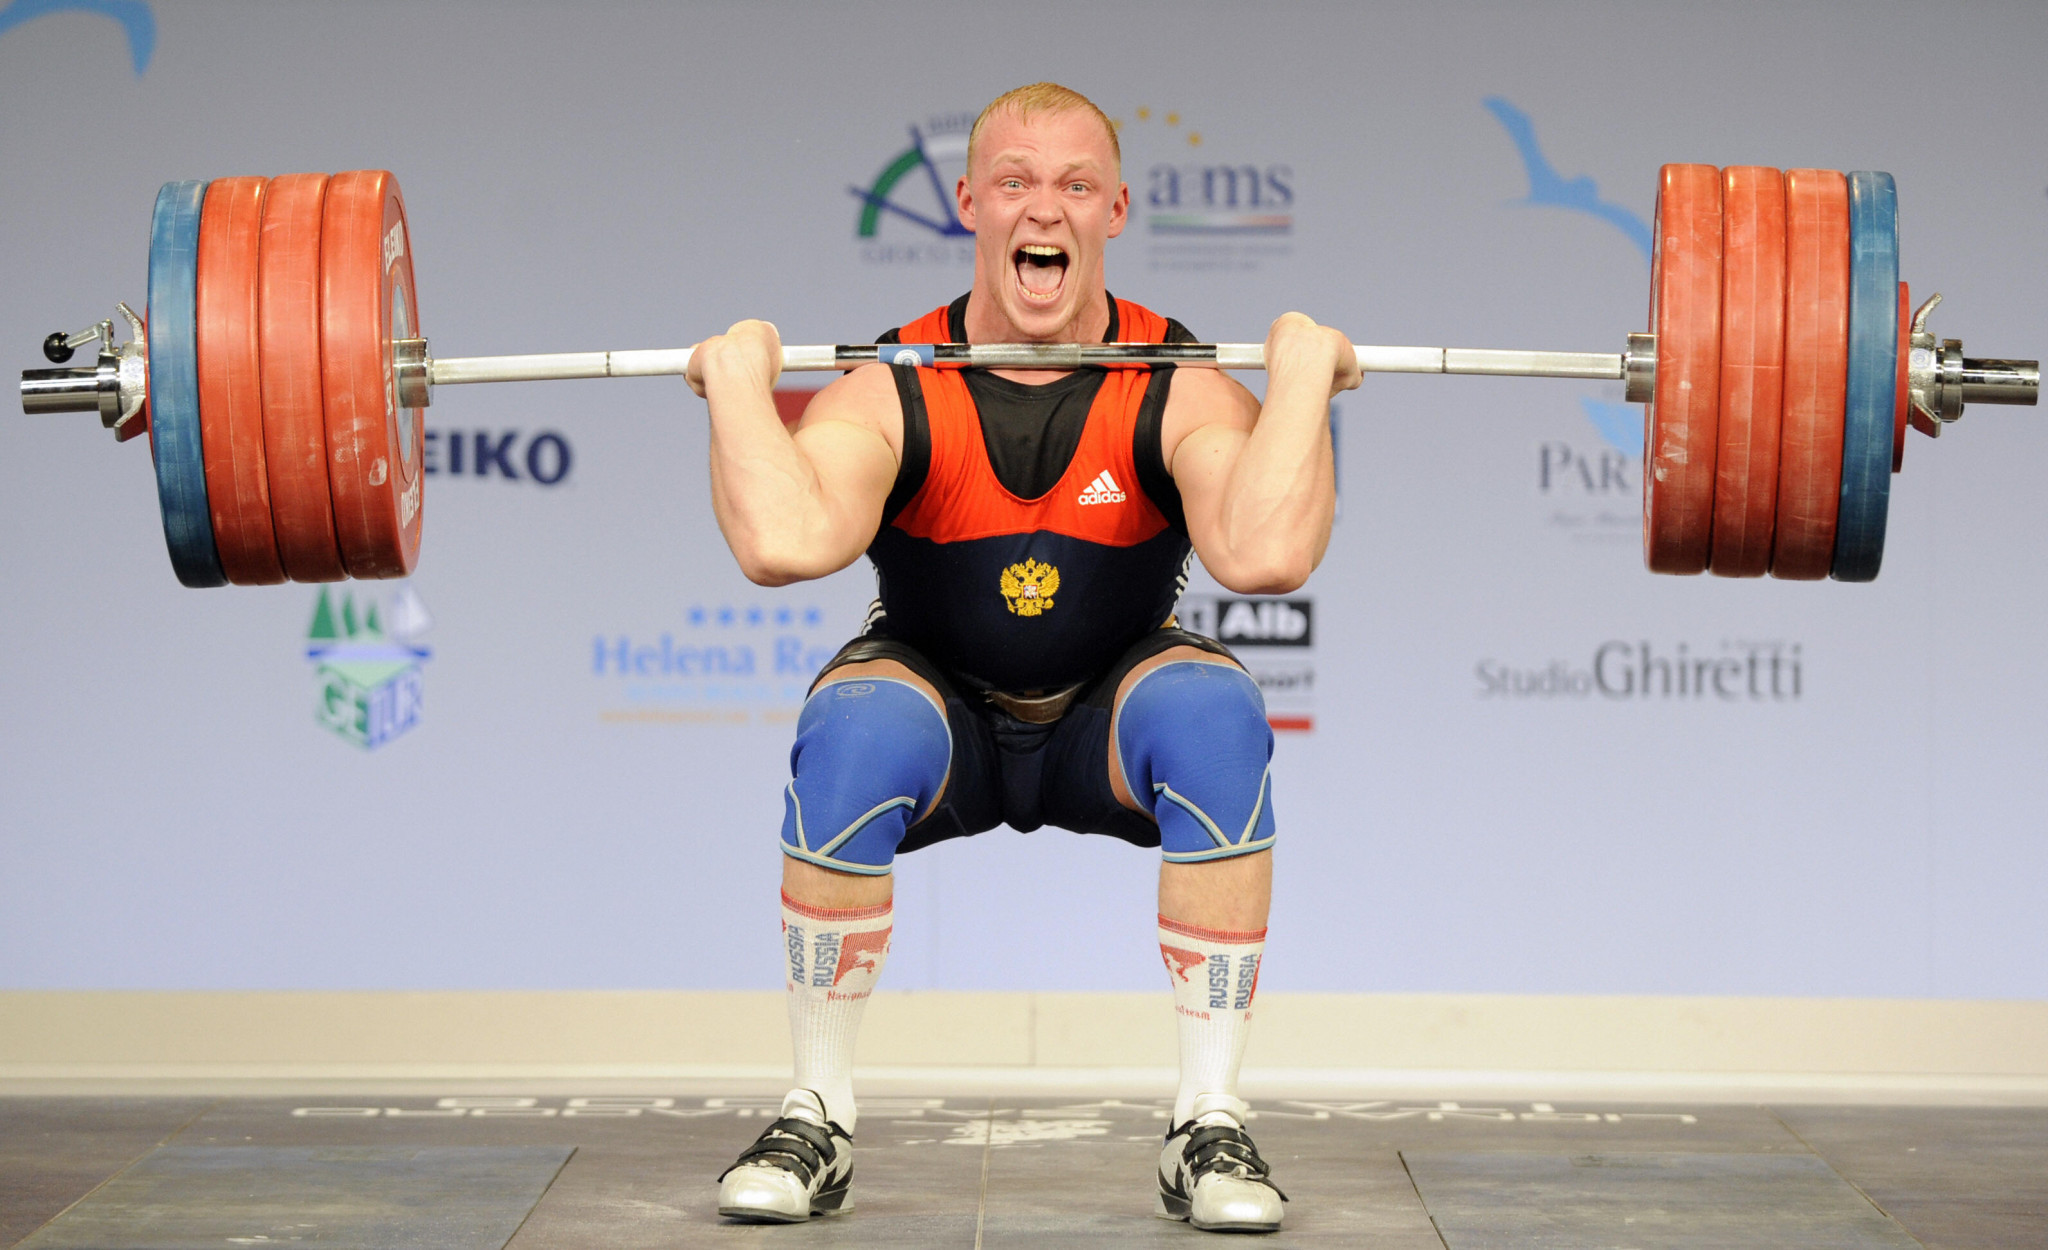 Double European weightlifting champion Demanov handed doping suspension